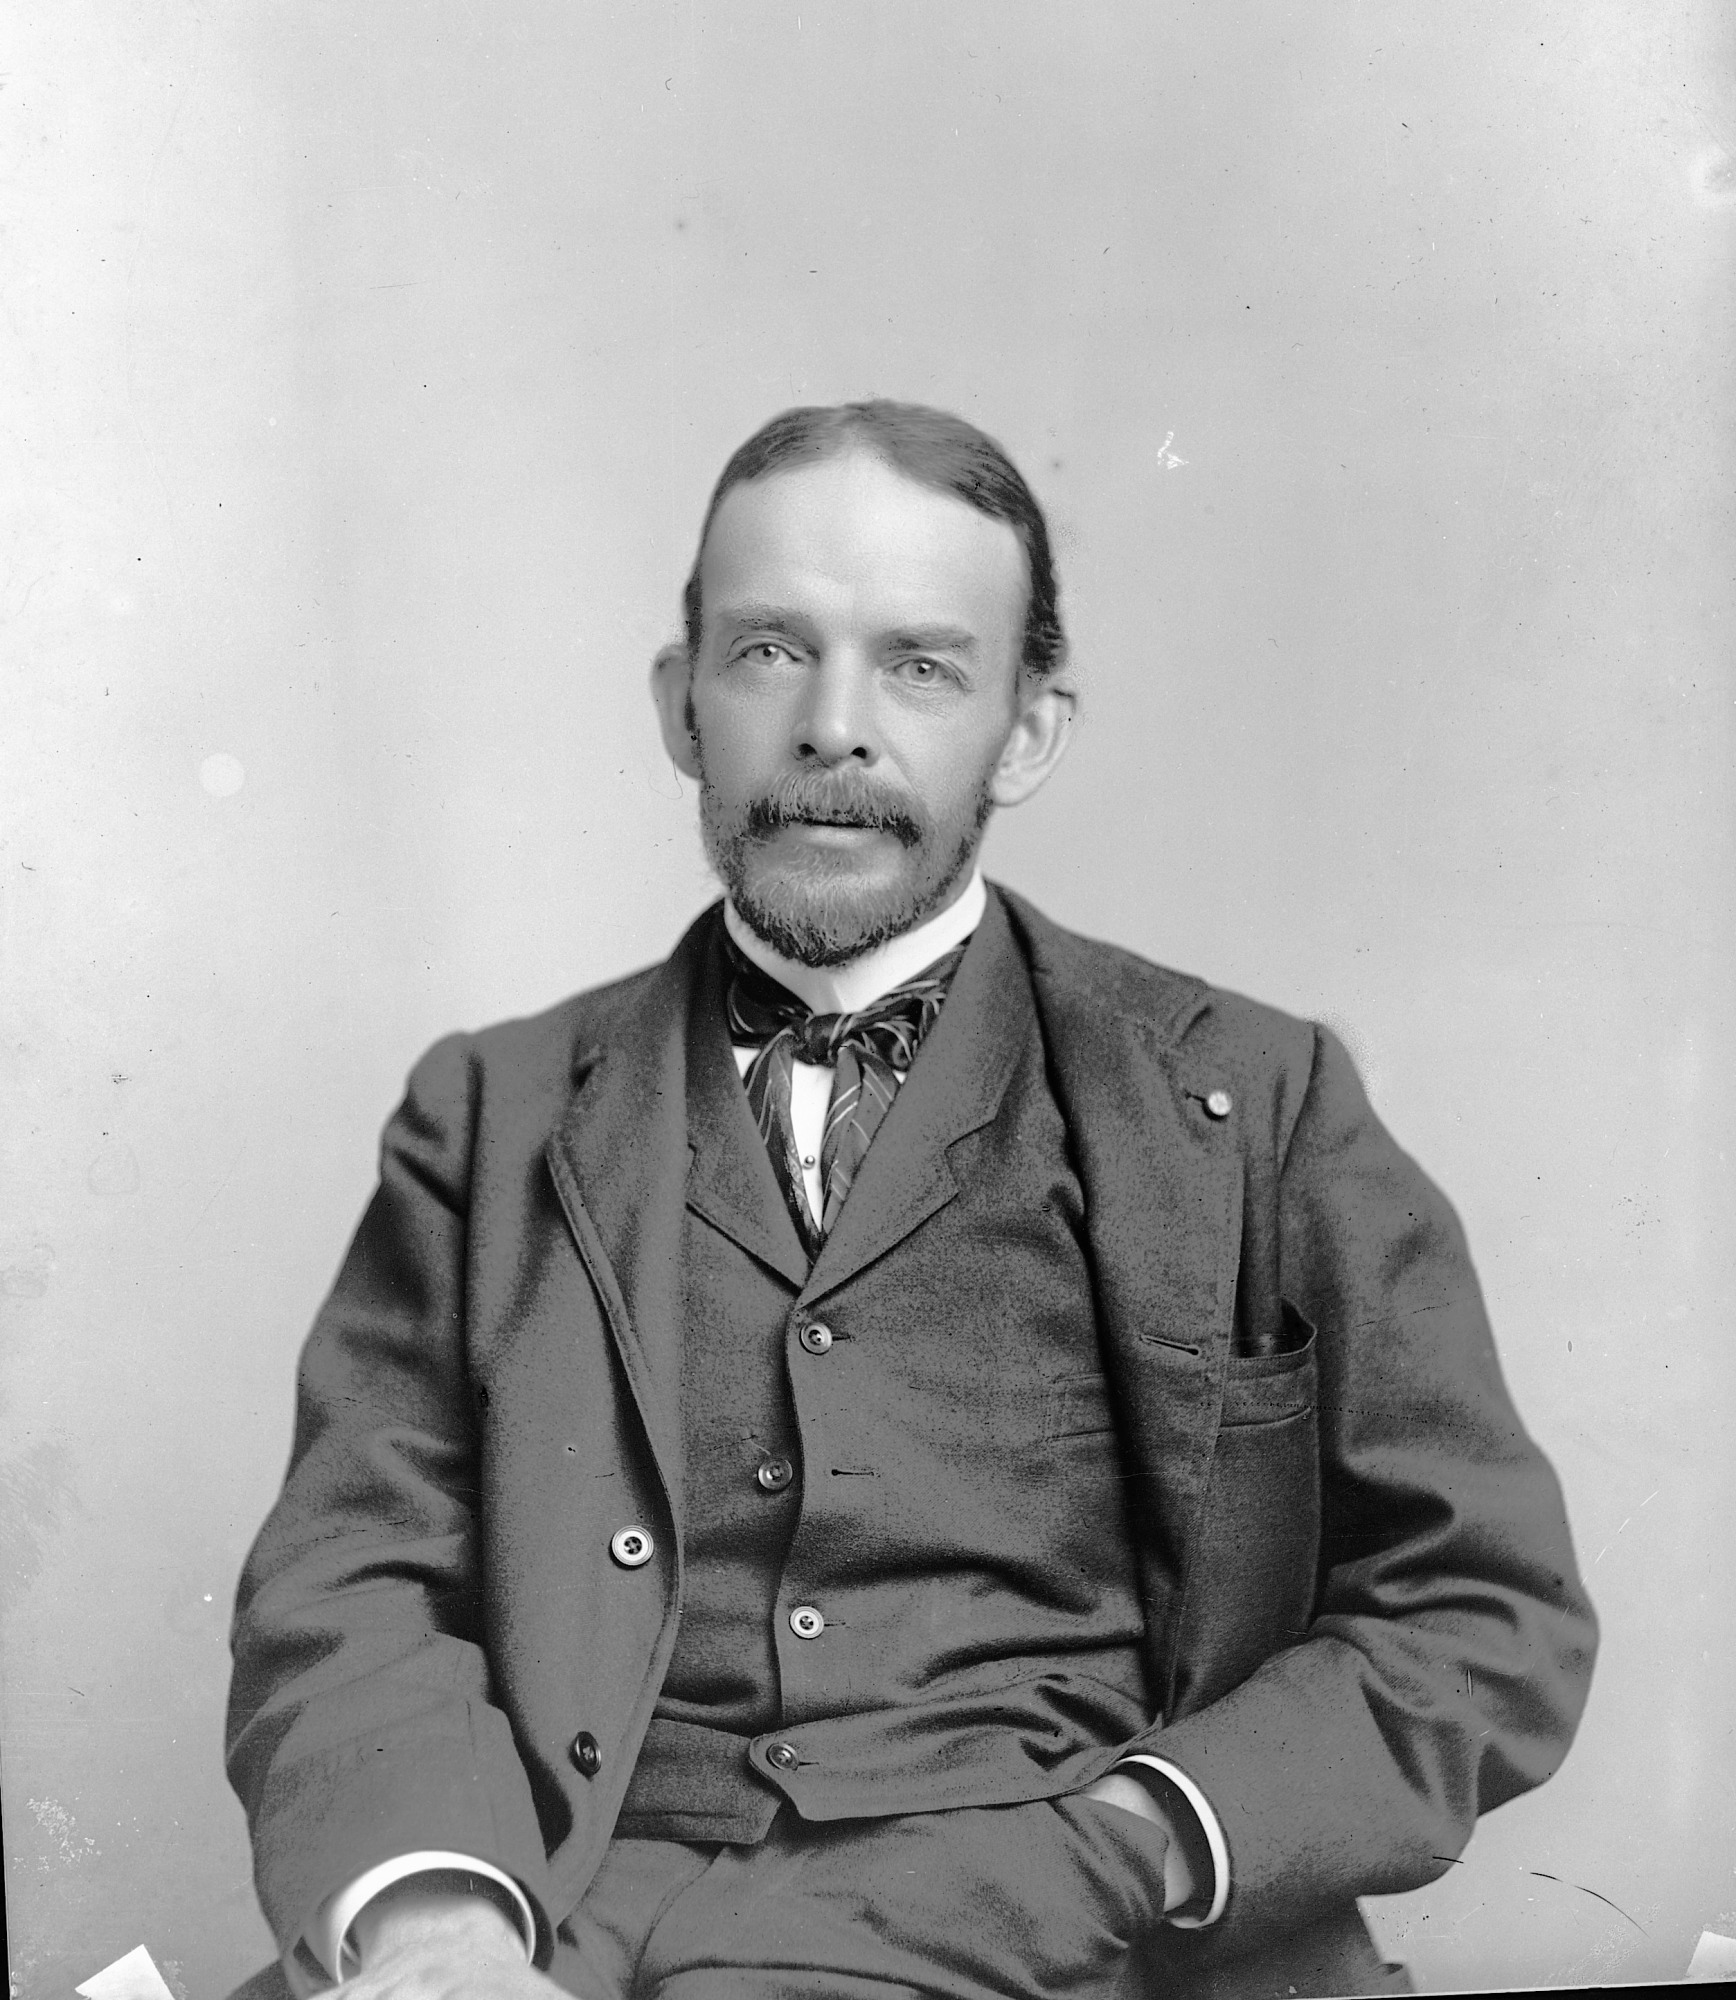 George Brown Goode, by Unknown, c. 1880s, Smithsonian Archives - History Div, 9508 or MAH-9508.